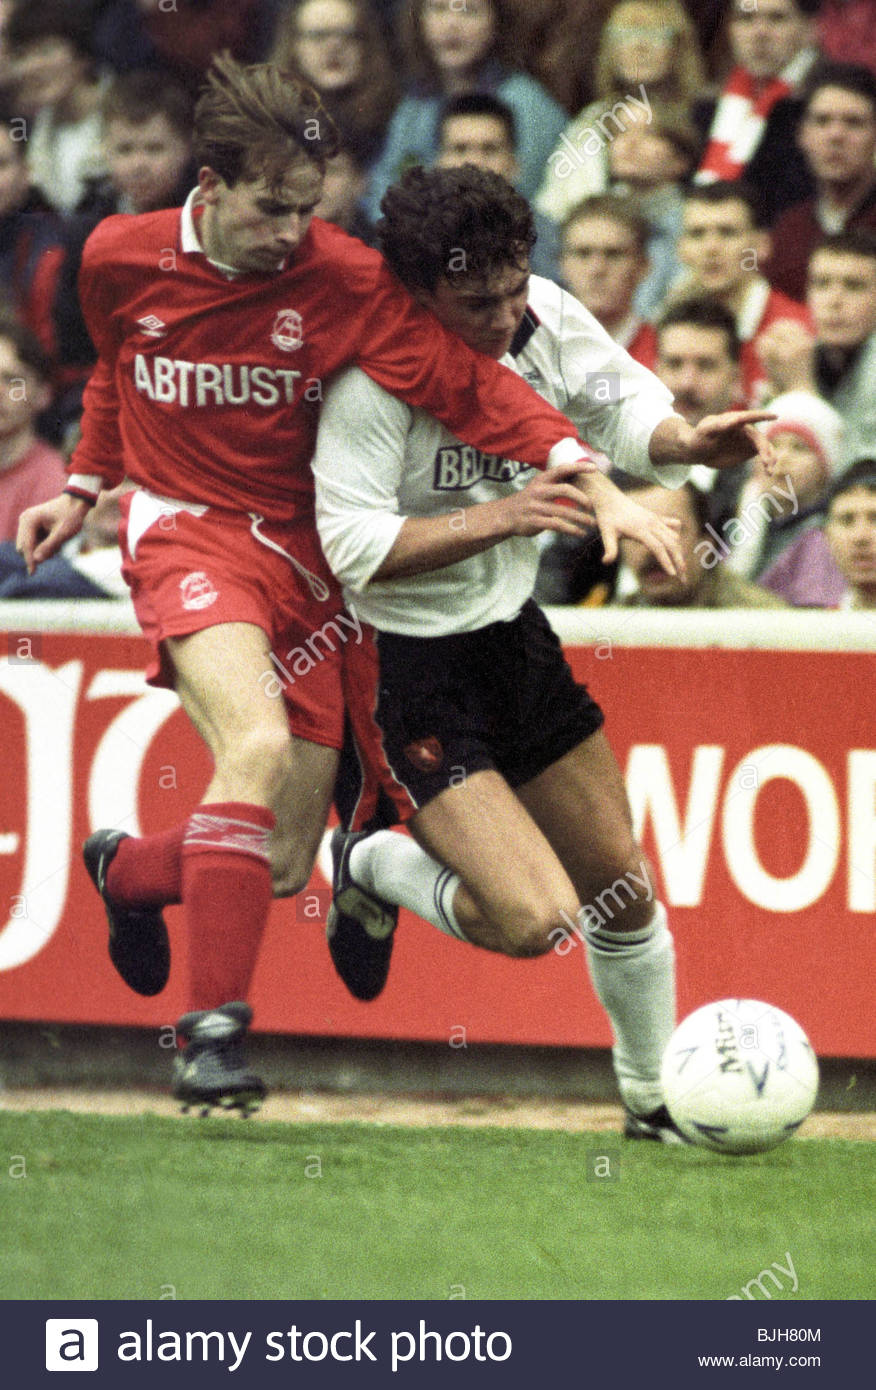 07/02/93 TENNENT'S SCOTTISH CUP ABERDEEN v DUNDEE UTD (2-0) PITTODRIE - ABERDEEN Stephen Wright (left) grapples - Stock Image